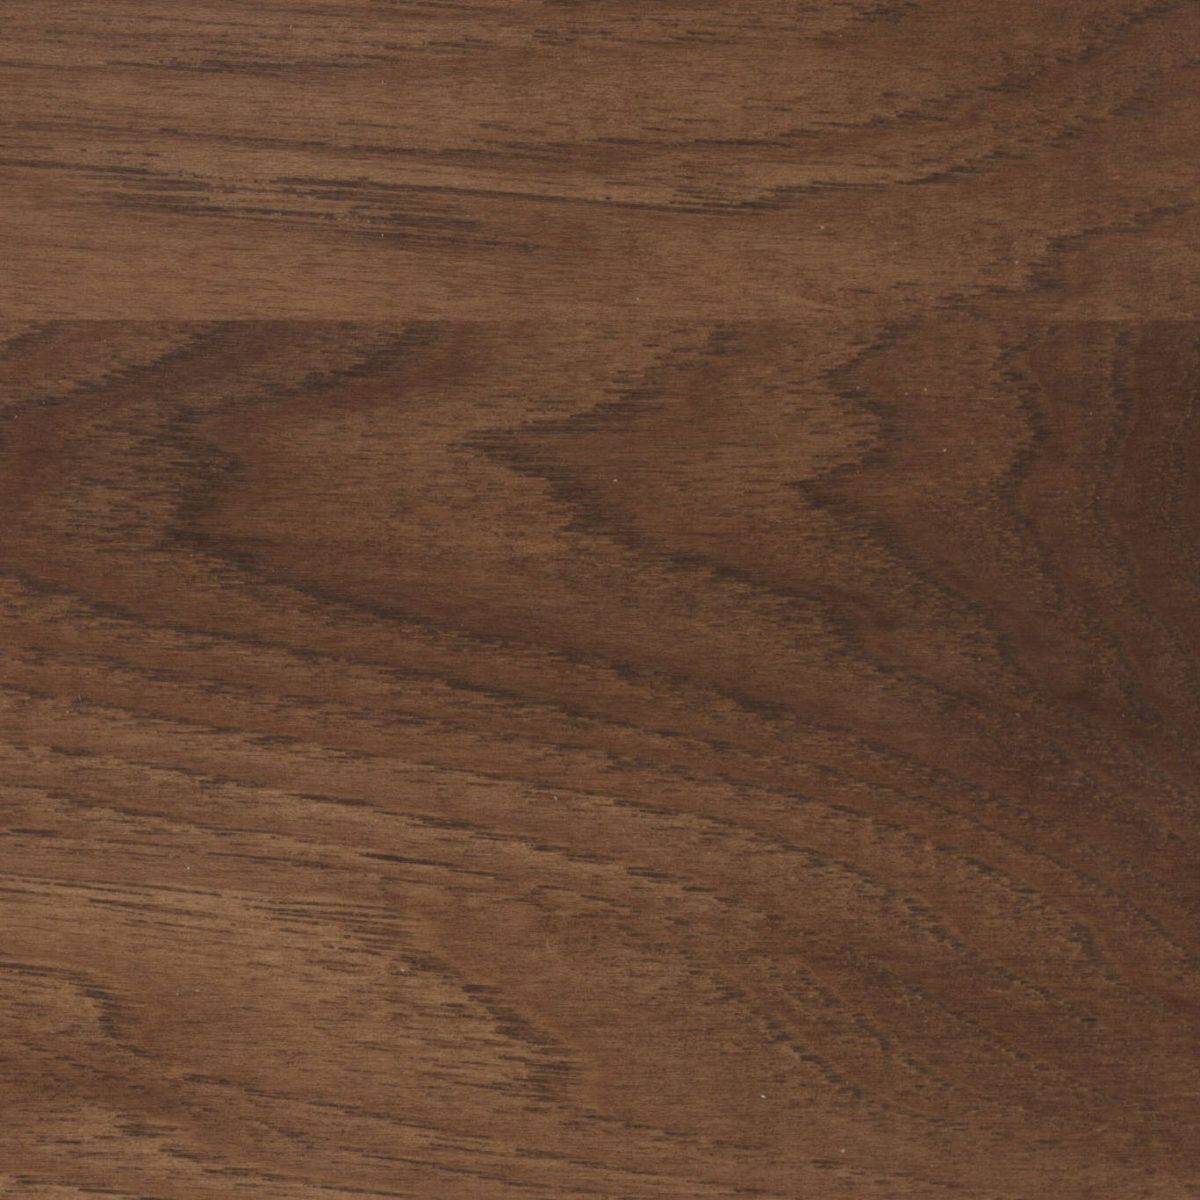 26 Hickory Stained Wood Sample